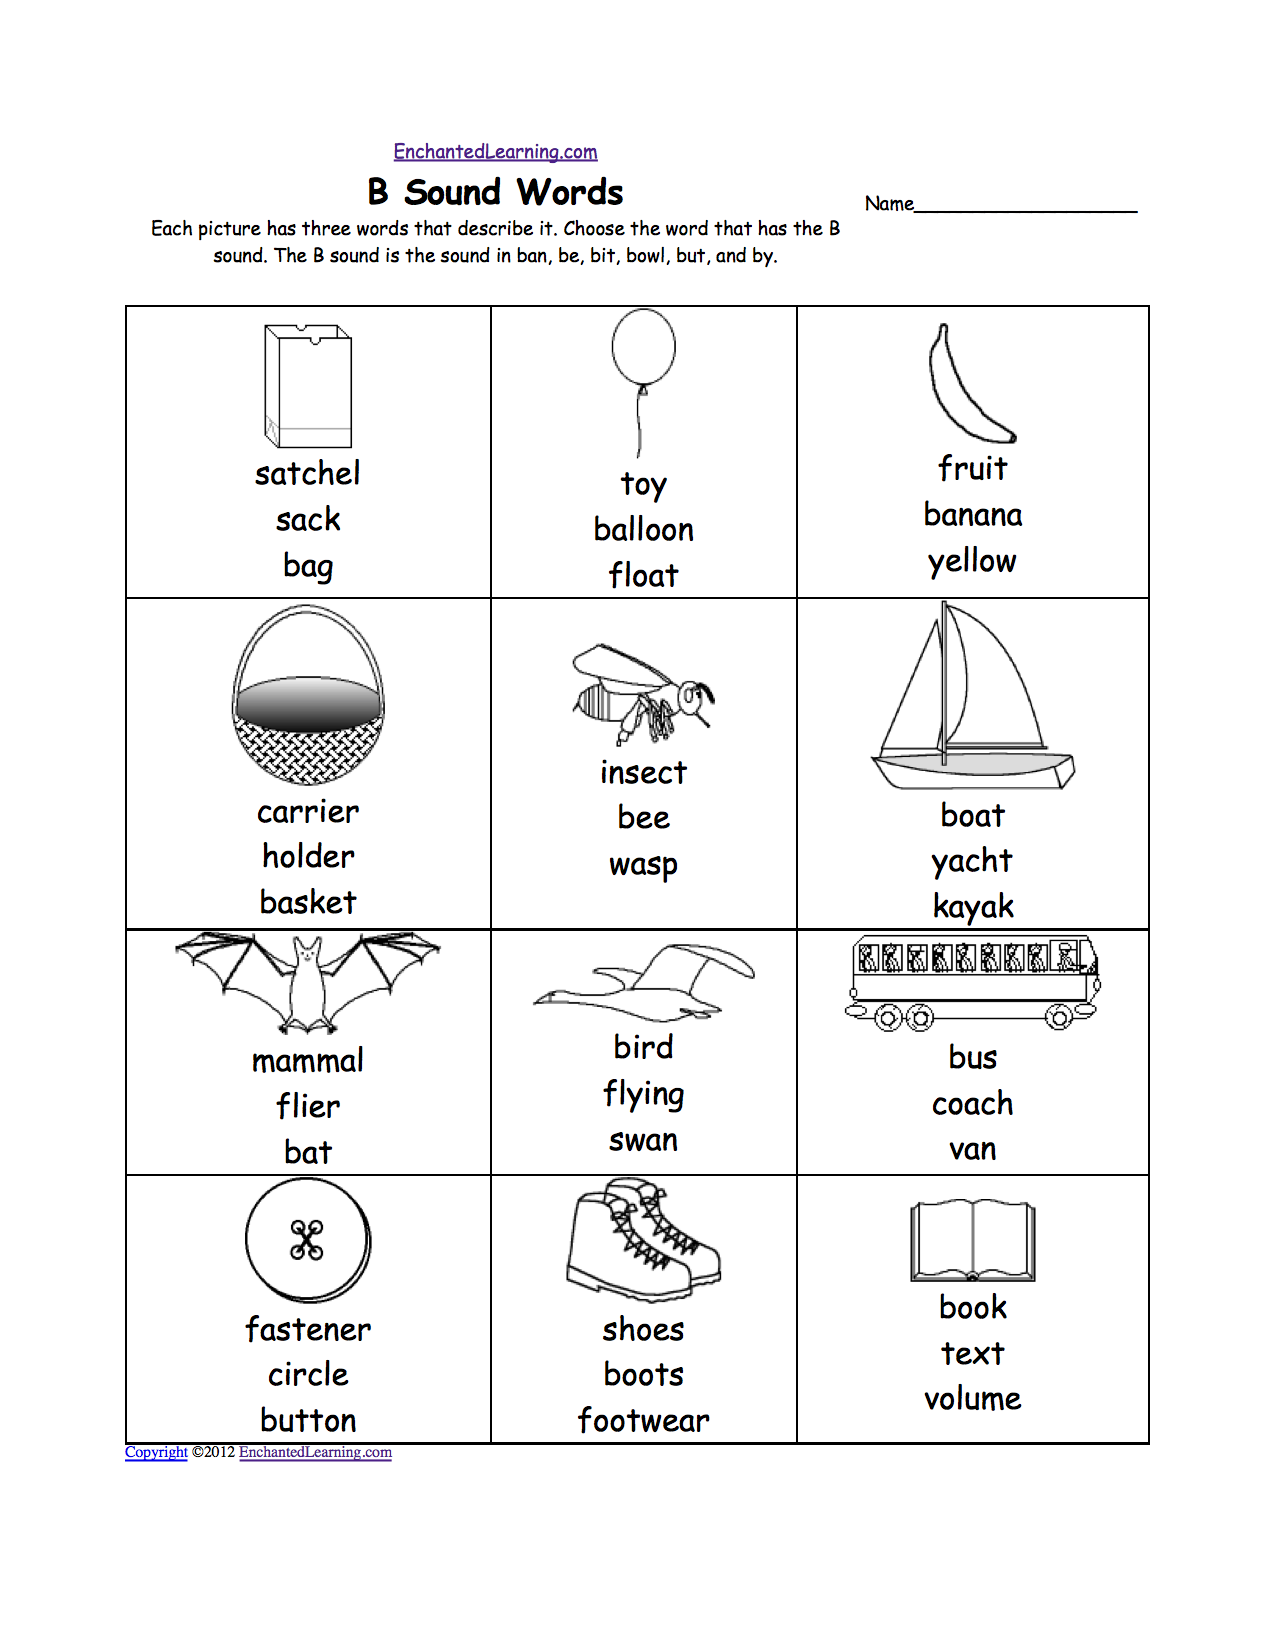 Aldiablosus  Unique Phonics Worksheets Multiple Choice Worksheets To Print  With Lovable Quotbquot Sound Phonics Worksheet Multiple Choice Each Picture Has Three Words That Describe It Choose The Word That Has A Quotbquot Sound The Quotbquot Sound Is The Sound  With Appealing Free Fourth Grade Worksheets Also Simplifying Radicals Worksheet No Variables In Addition Antonym And Synonym Worksheets And Rounding To The Nearest Ten And Hundred Worksheets As Well As Nd Grade Free Math Worksheets Additionally Nd Grade Math Facts Worksheets From Enchantedlearningcom With Aldiablosus  Lovable Phonics Worksheets Multiple Choice Worksheets To Print  With Appealing Quotbquot Sound Phonics Worksheet Multiple Choice Each Picture Has Three Words That Describe It Choose The Word That Has A Quotbquot Sound The Quotbquot Sound Is The Sound  And Unique Free Fourth Grade Worksheets Also Simplifying Radicals Worksheet No Variables In Addition Antonym And Synonym Worksheets From Enchantedlearningcom